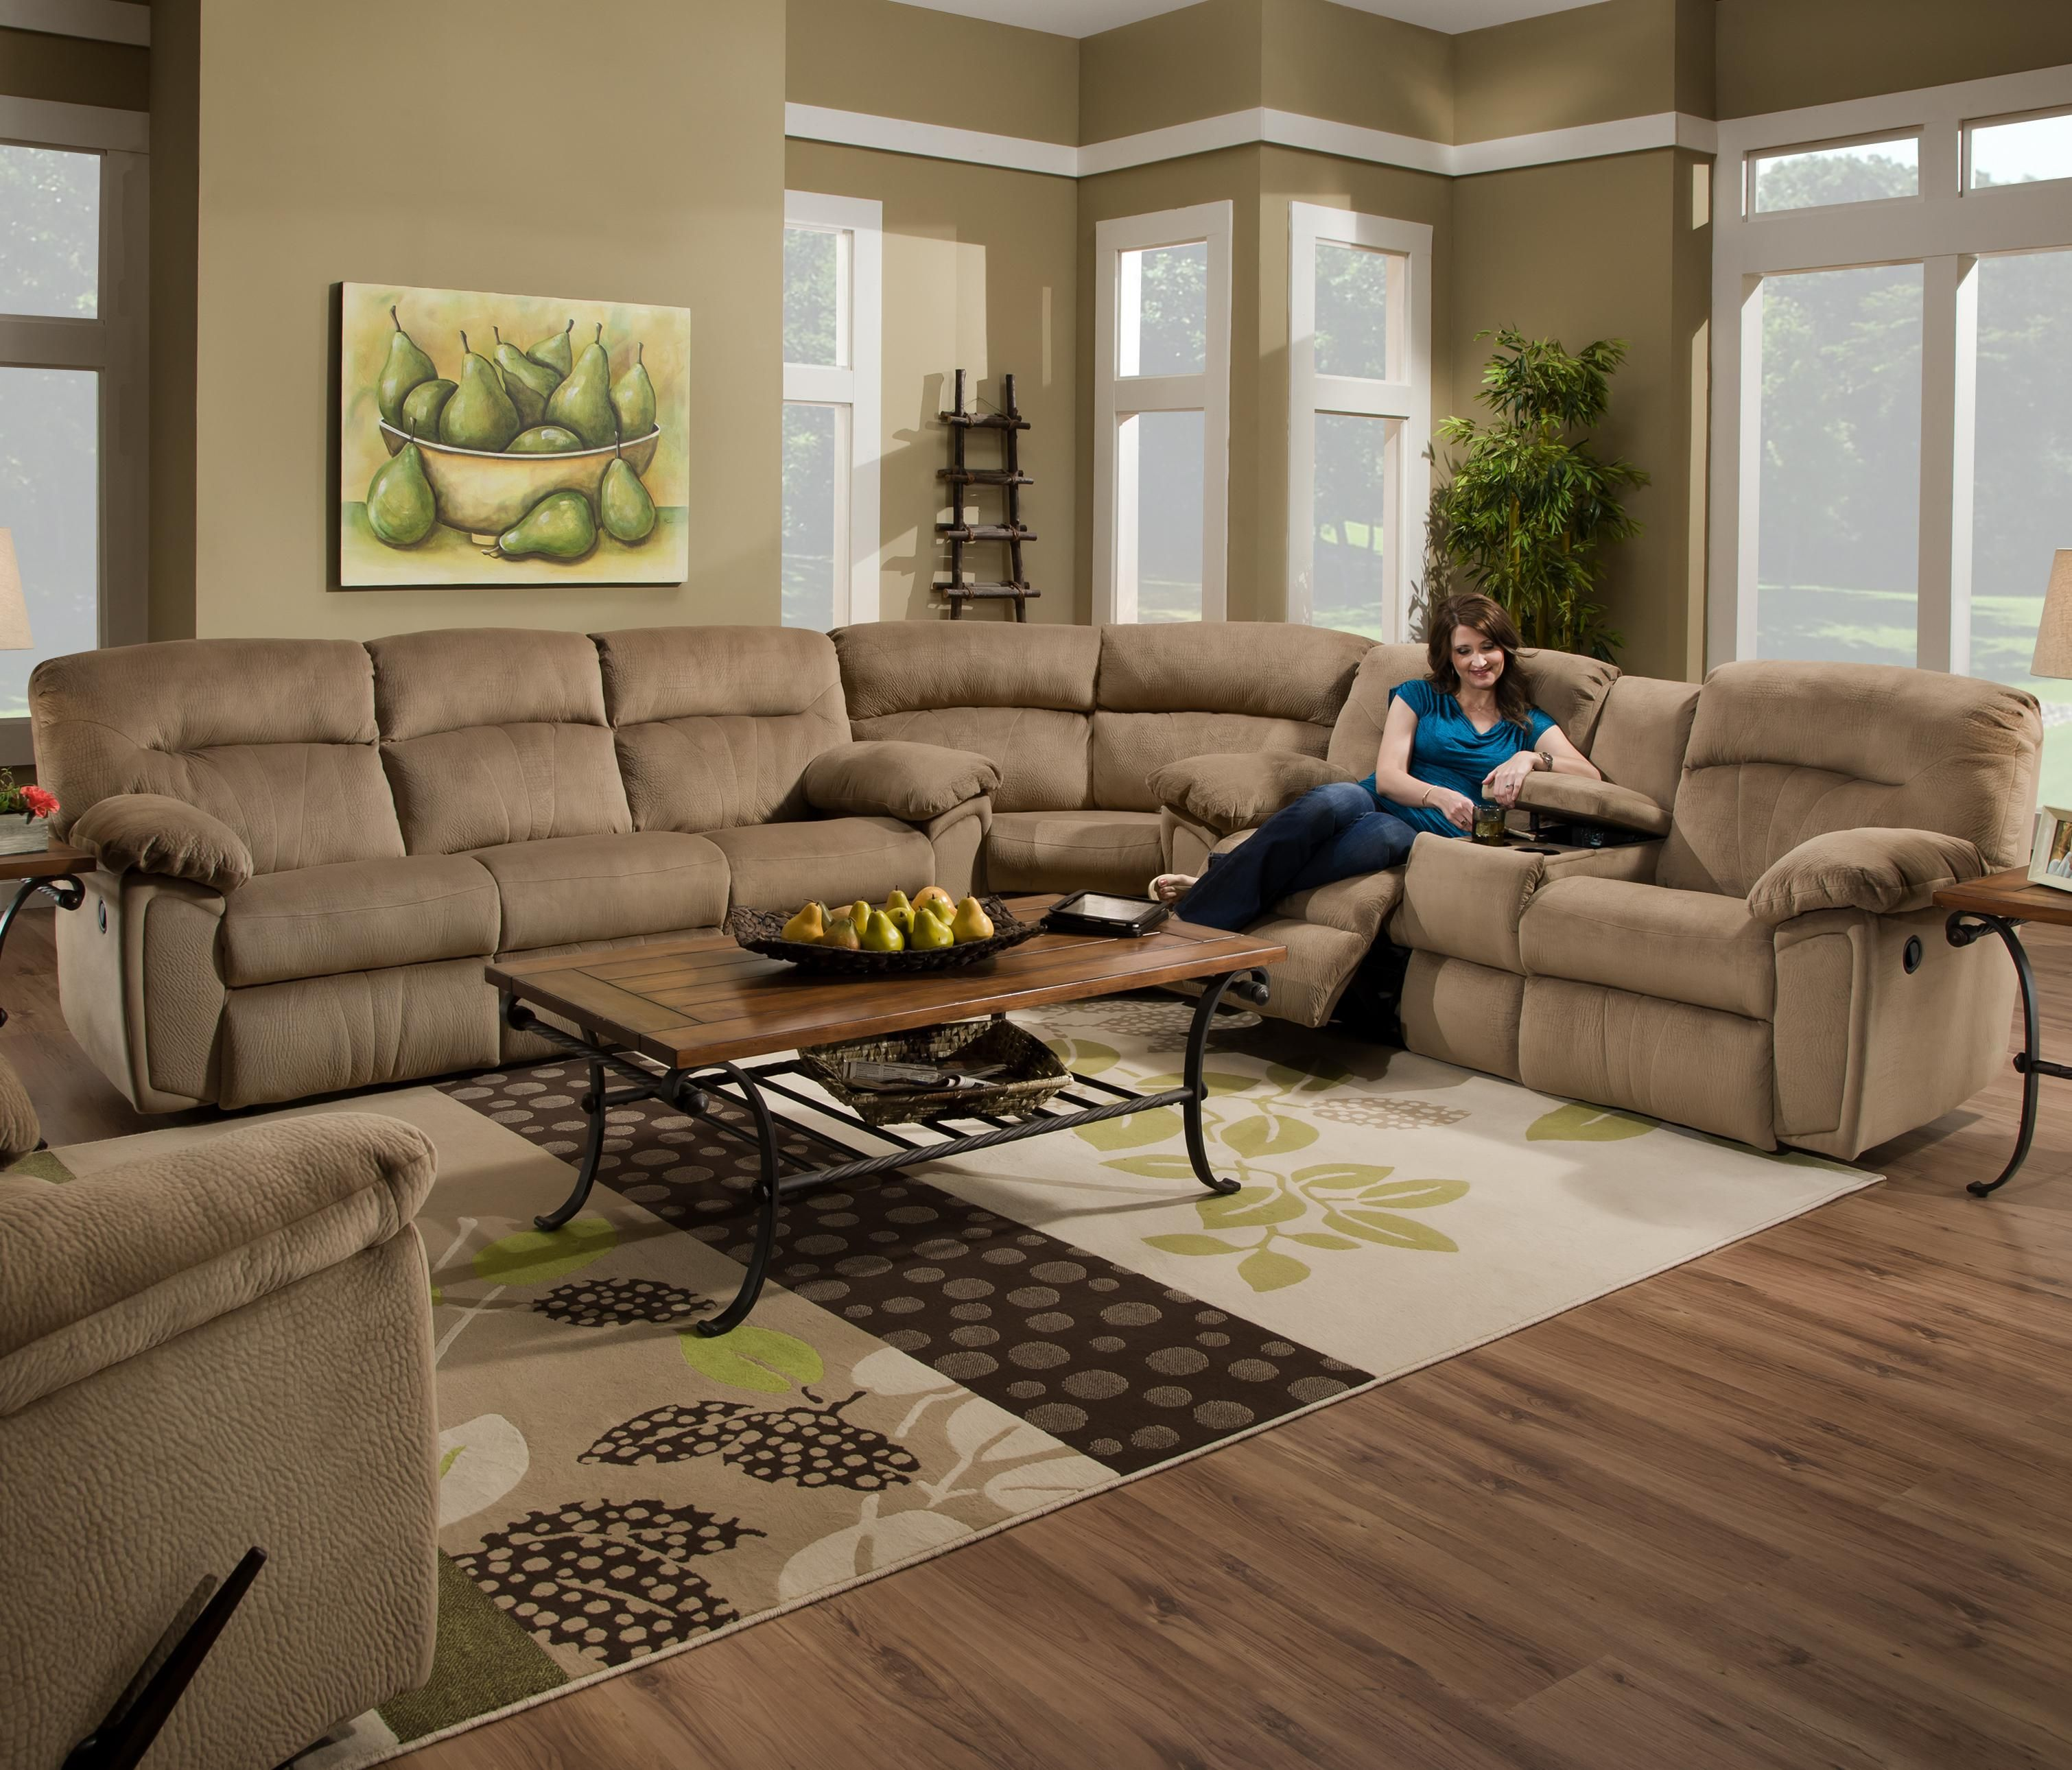 Splendor Collection 591 Reclining Sectional by Design 2 Recline